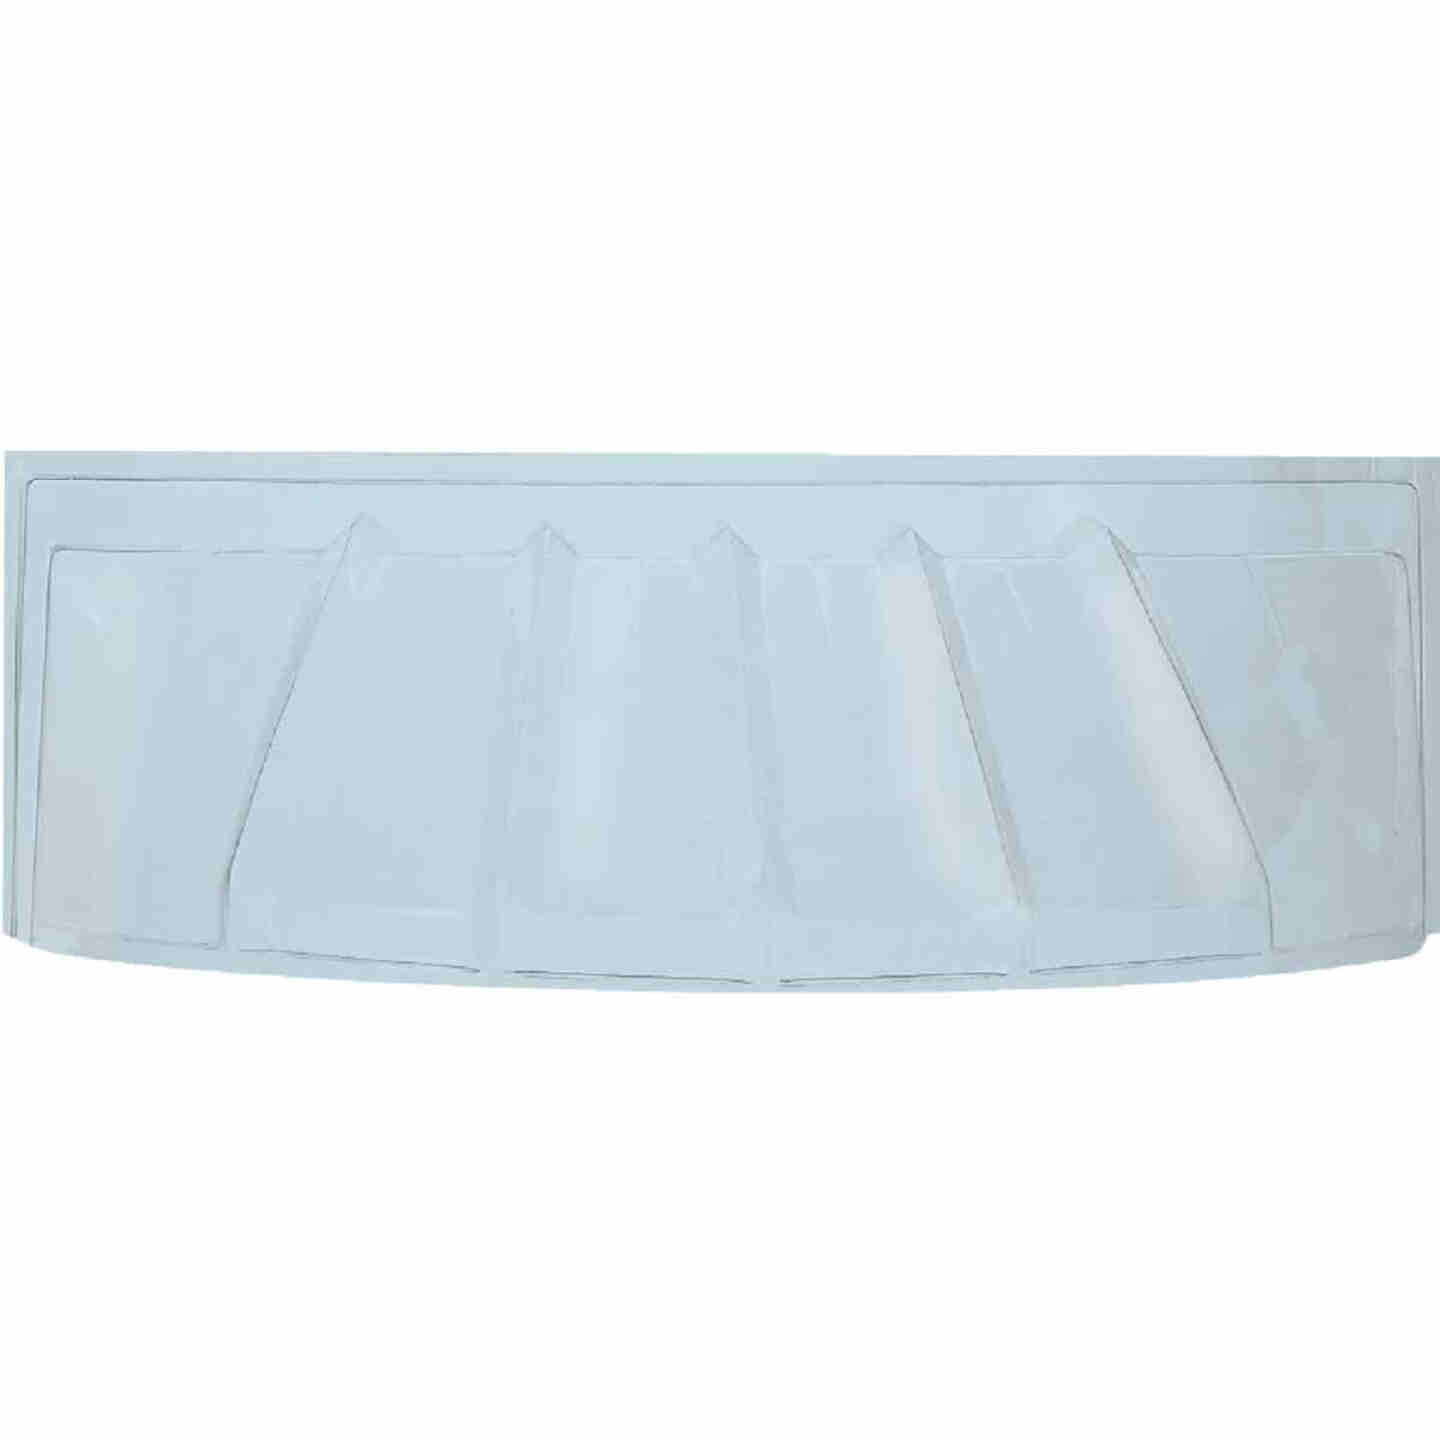 42 In. x 17 In. Bubble Plastic Window Well Cover Image 1